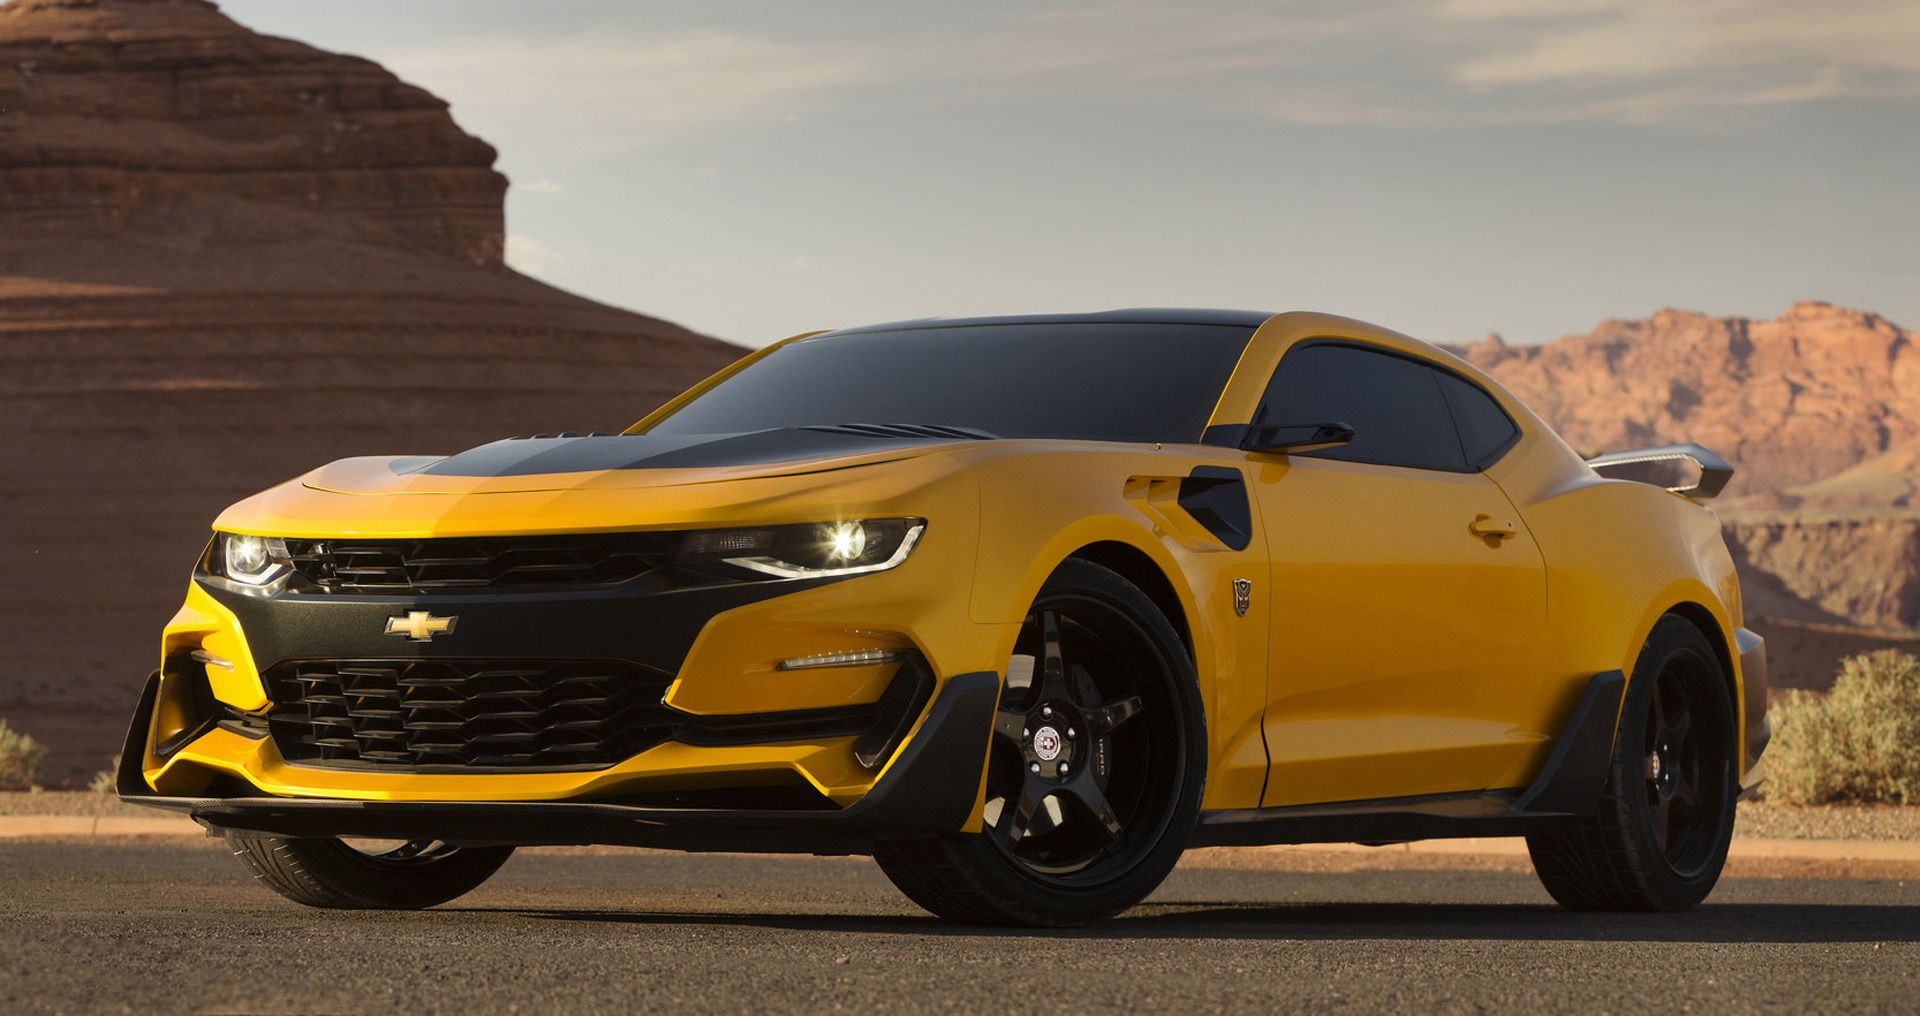 Transformers The Last Knight Bumblebee Camaro Revealed Chevrolet Camaro Bumblebee Chevy Camaro Zl1 Camaro